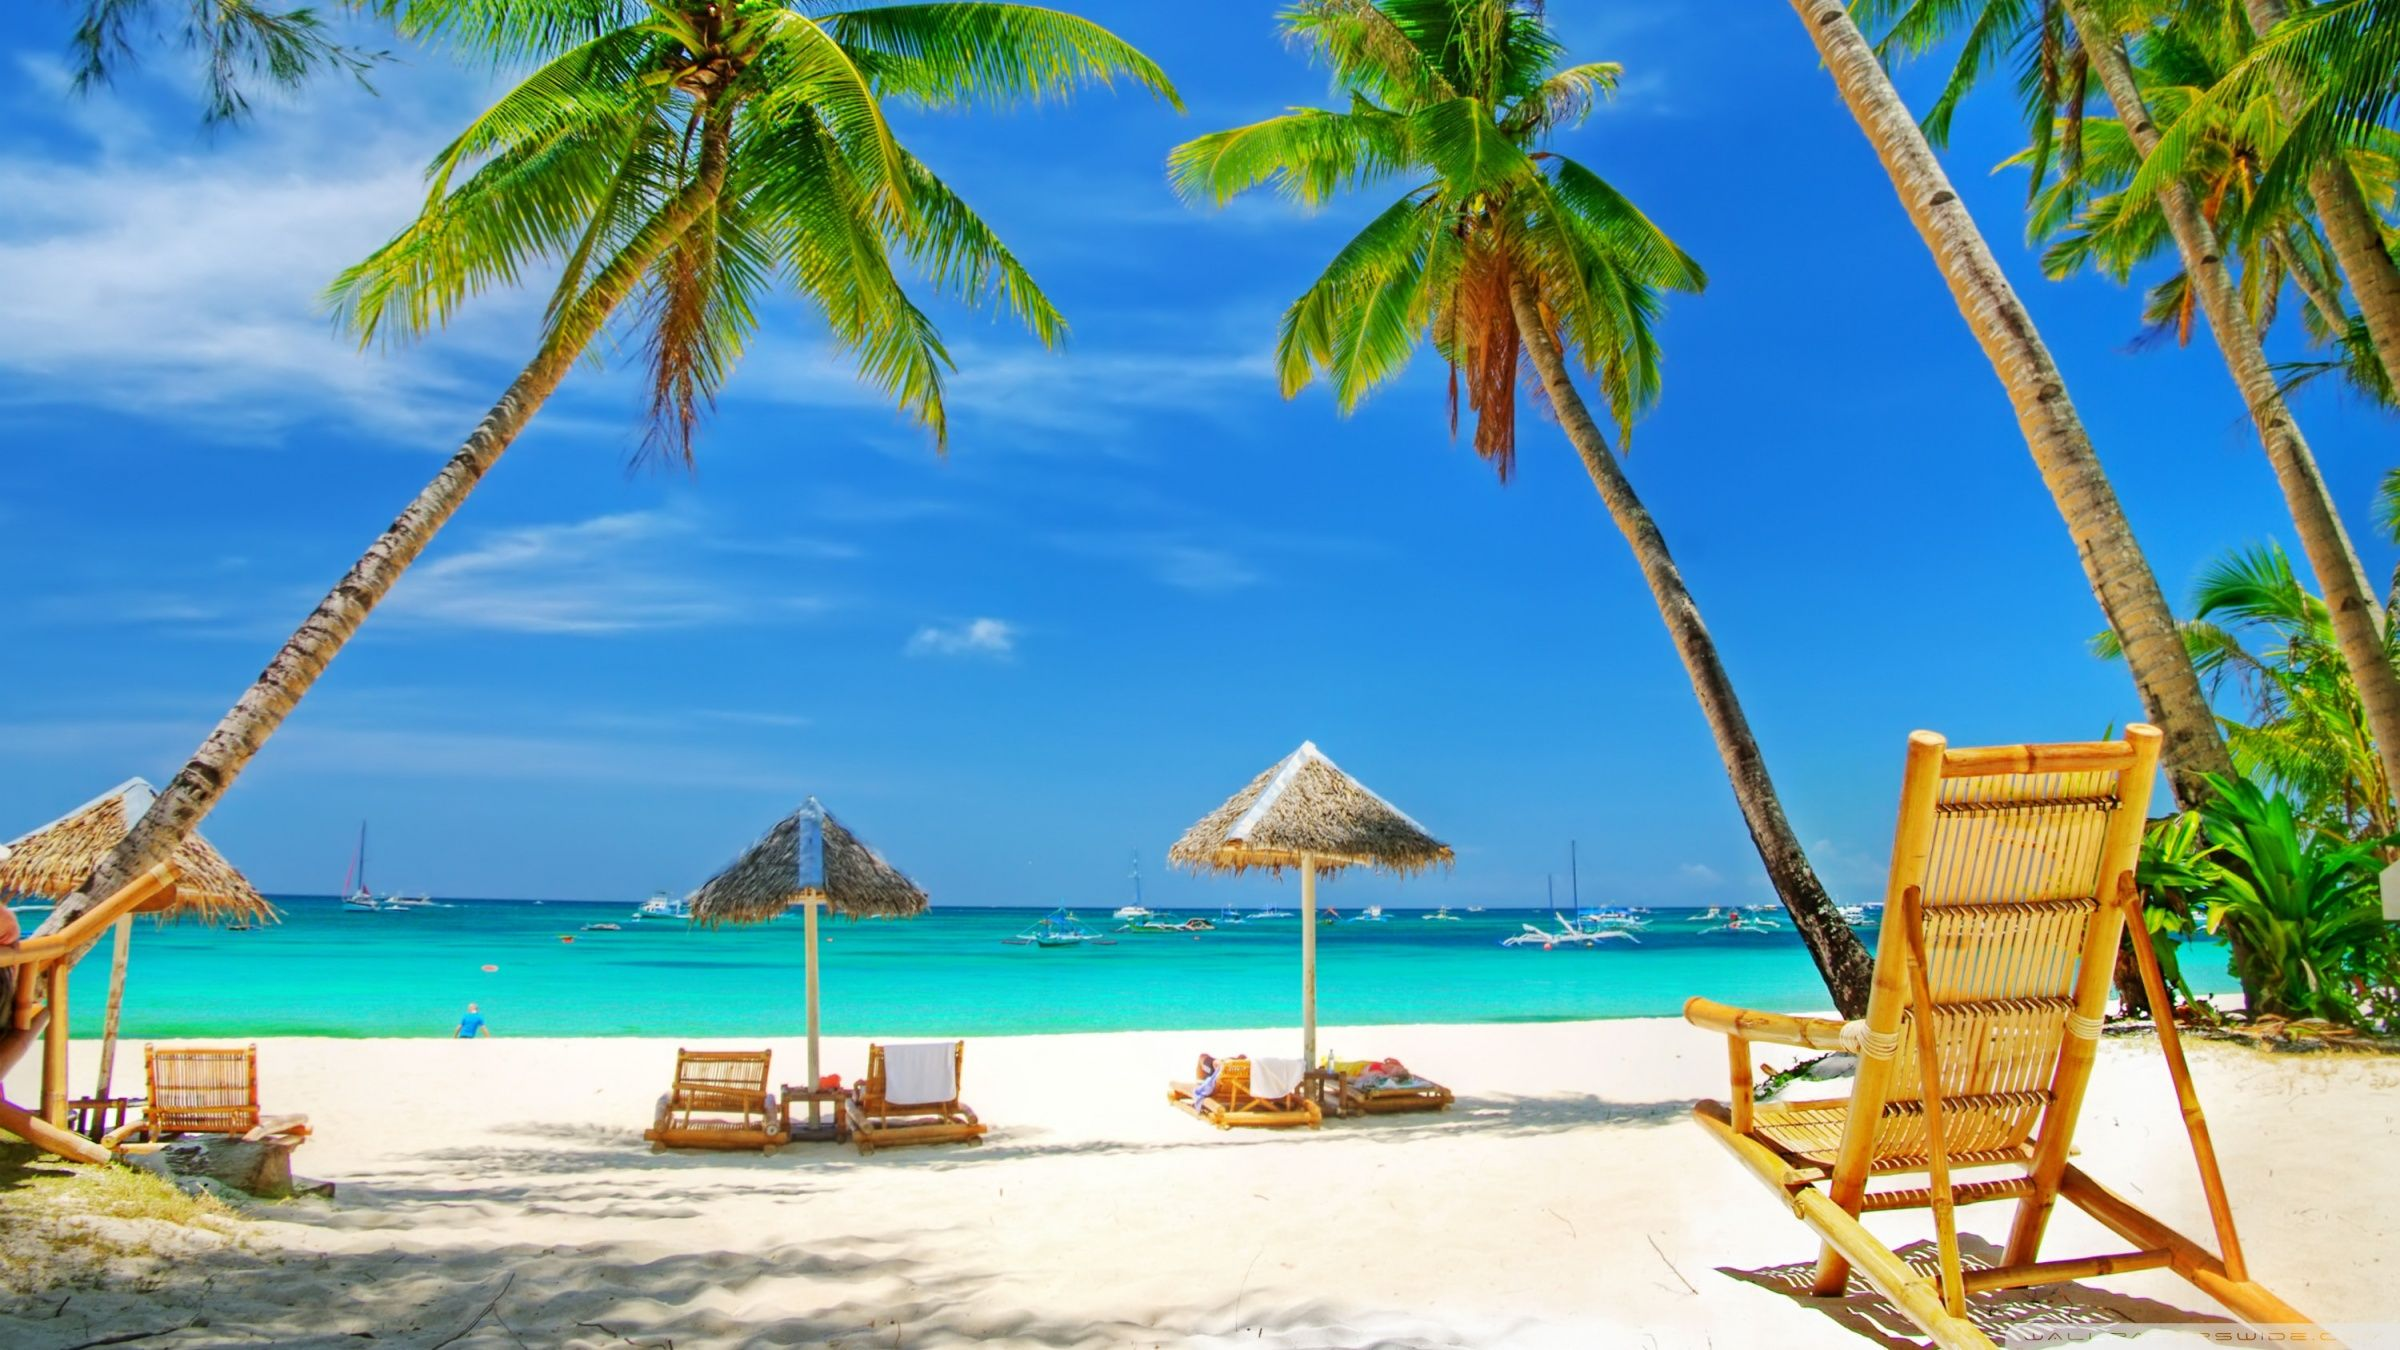 Download Tropical Paradise Beach Hd Wallpaper Beach Place Tropical Paradise Beach Beach Wallpaper